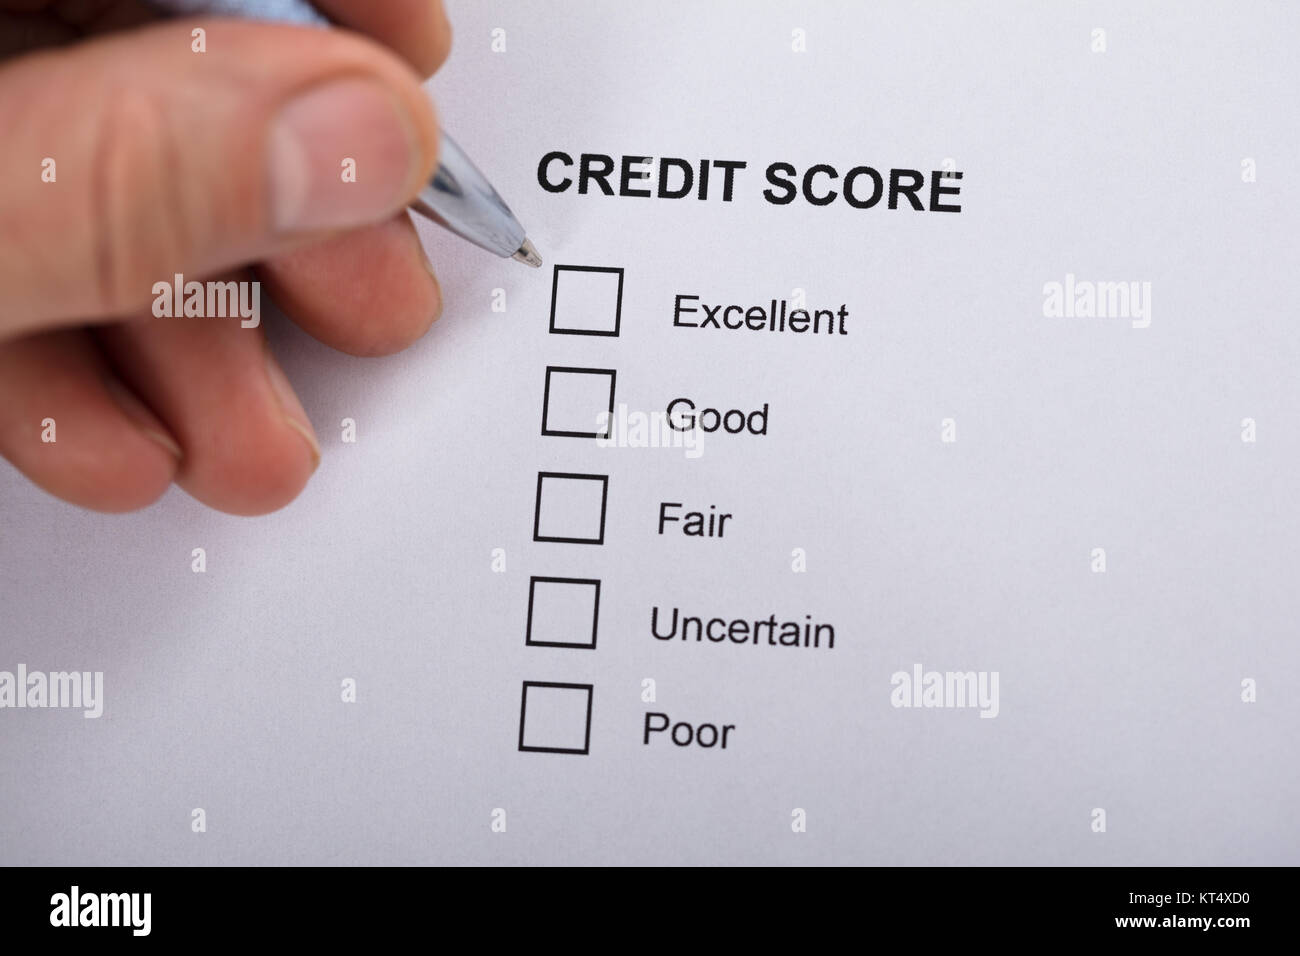 Person Filling Credit Score Form Stock Photo